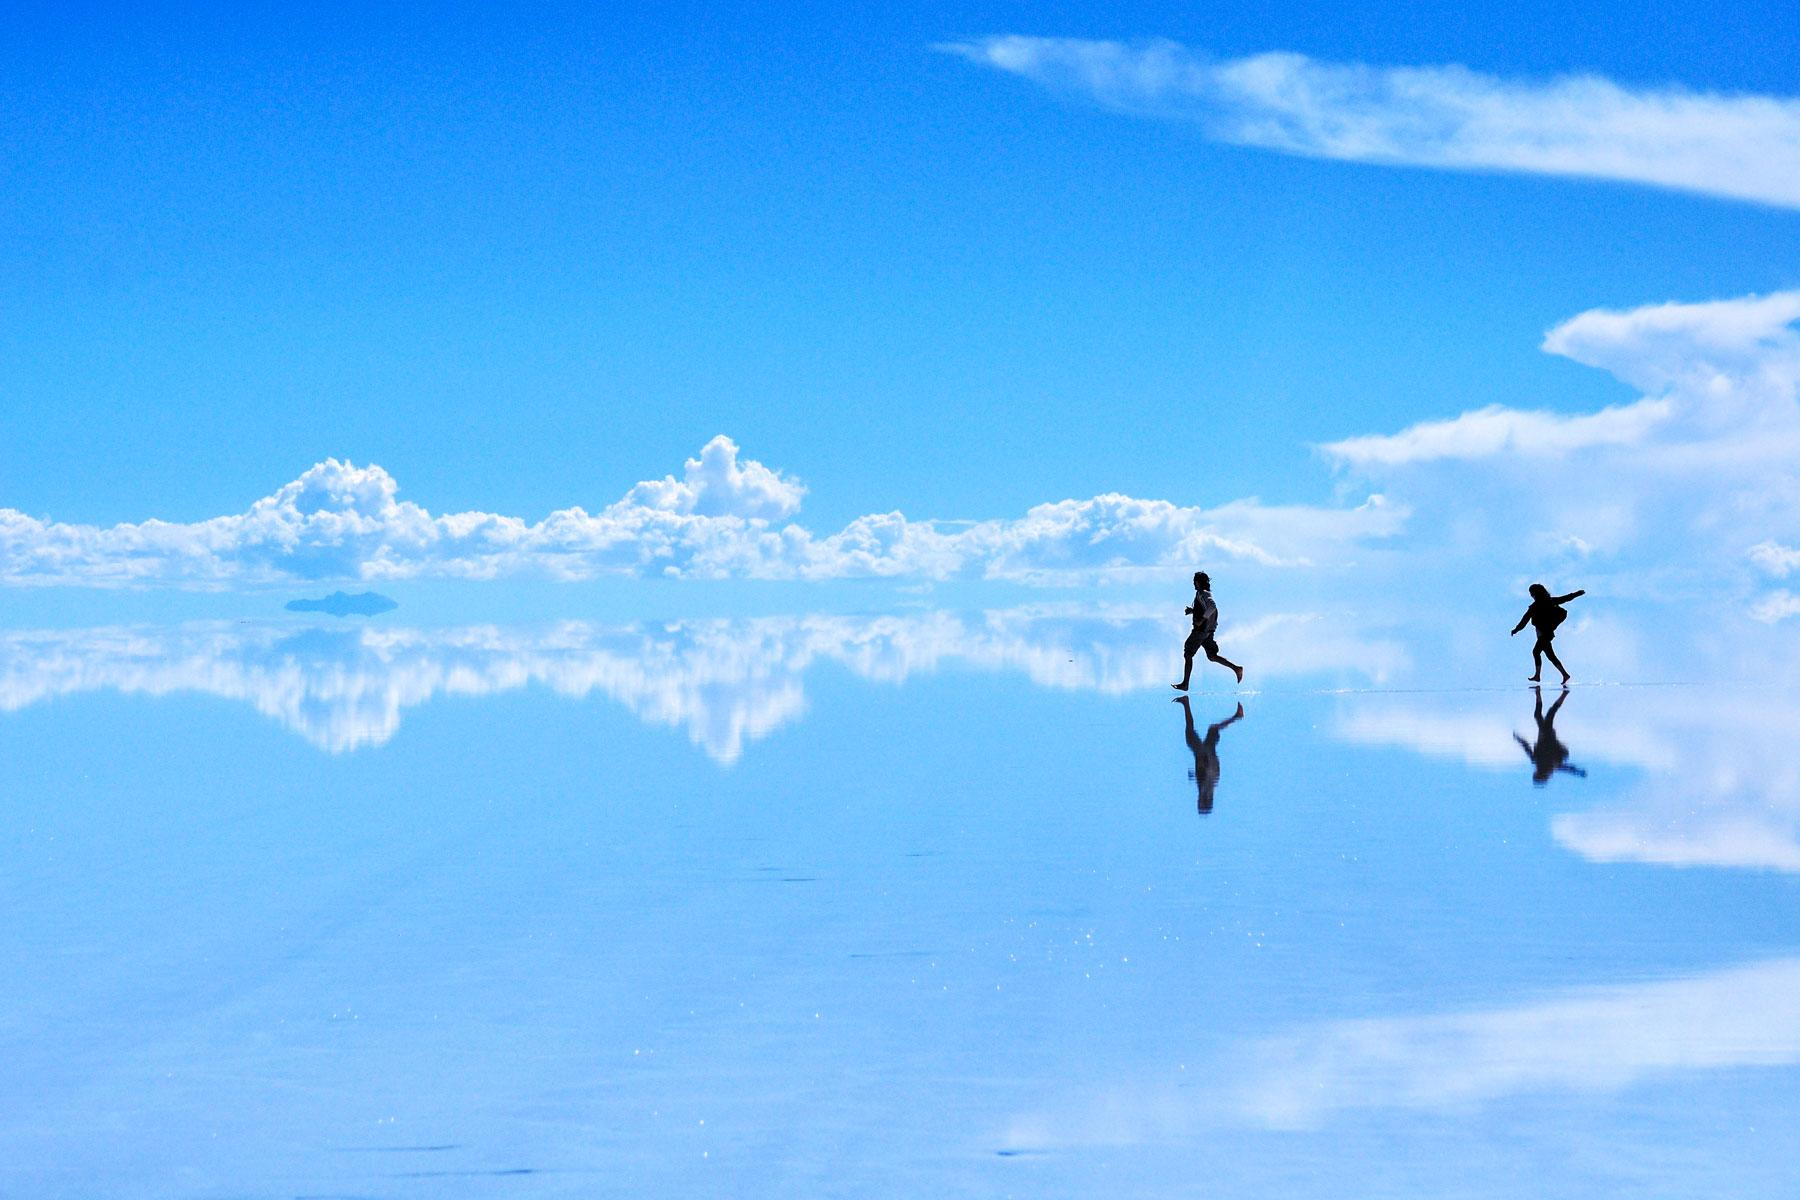 The Salt Flats Become A Natural Mirror